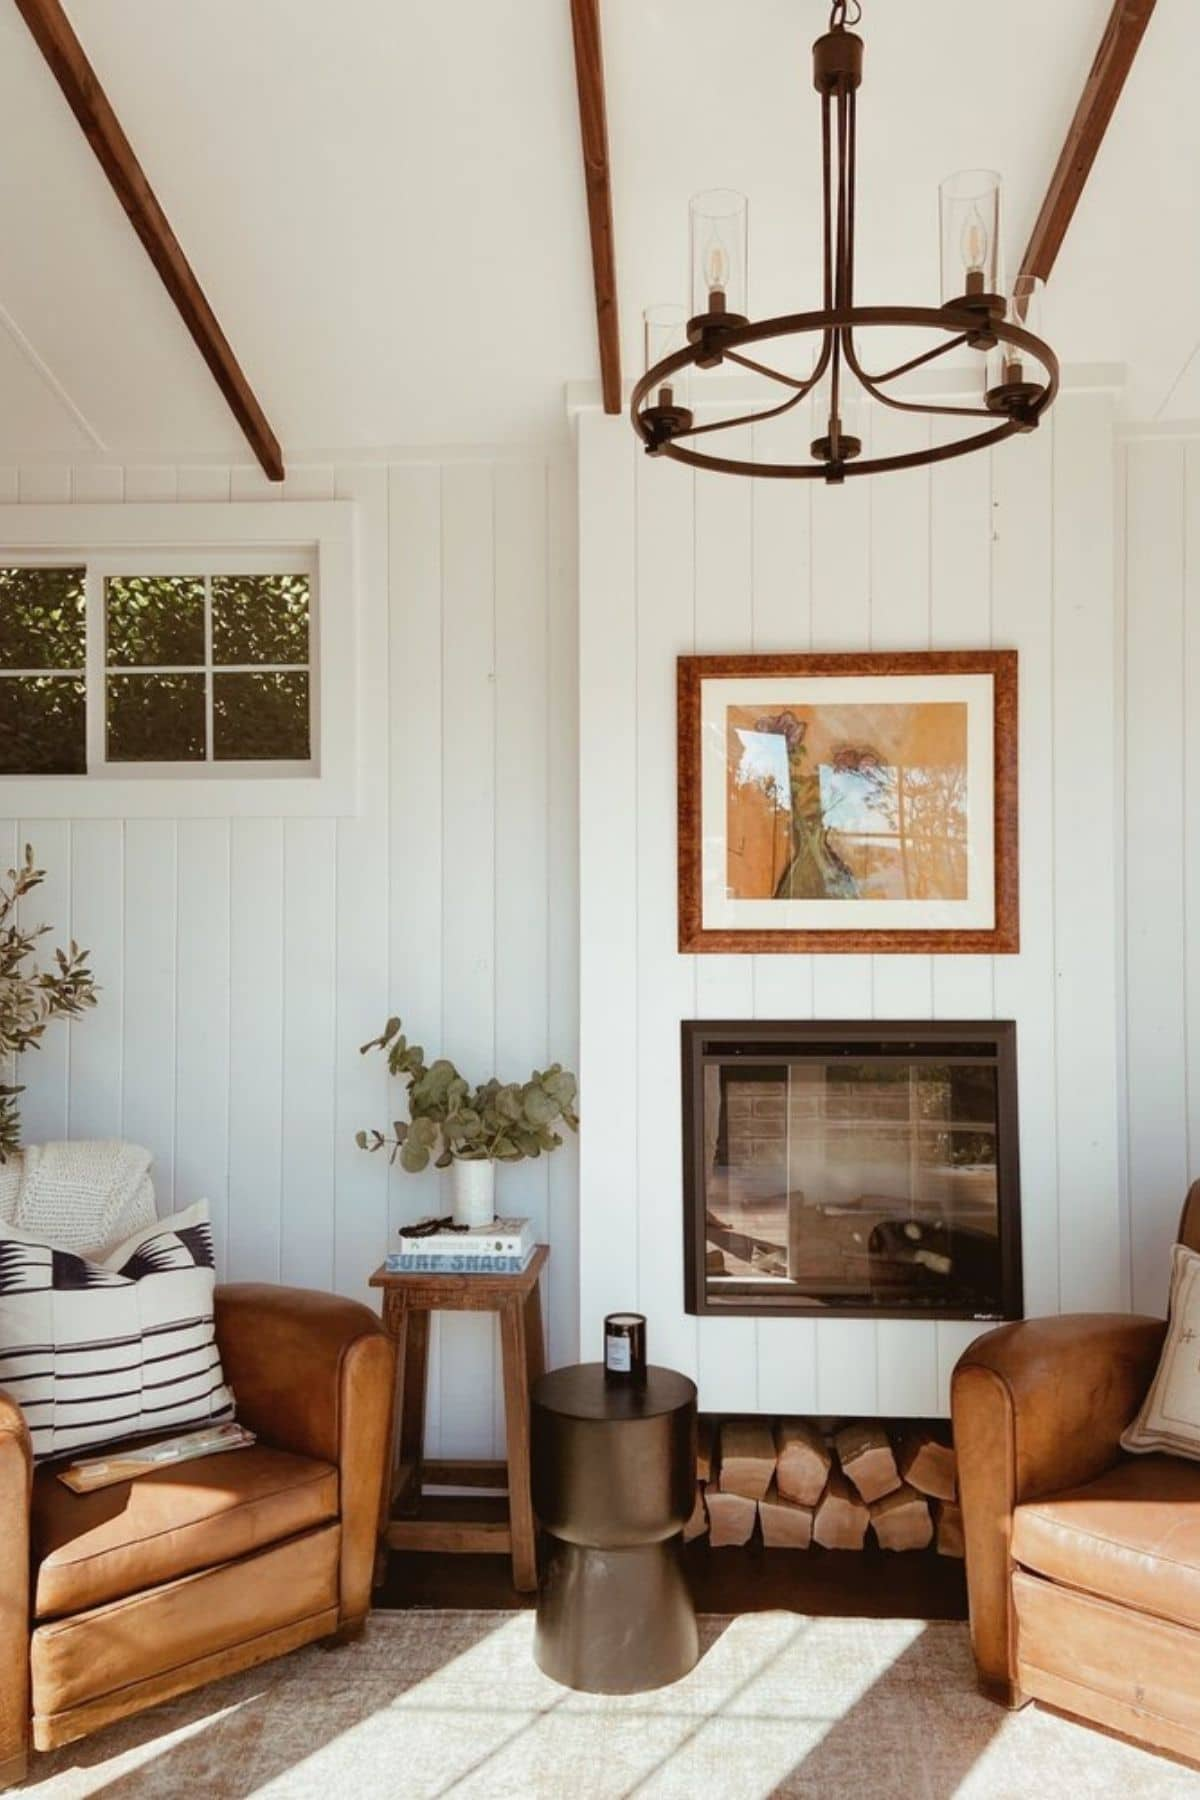 White shiplap wall with fireplace inset next to brown chairs and rustic light